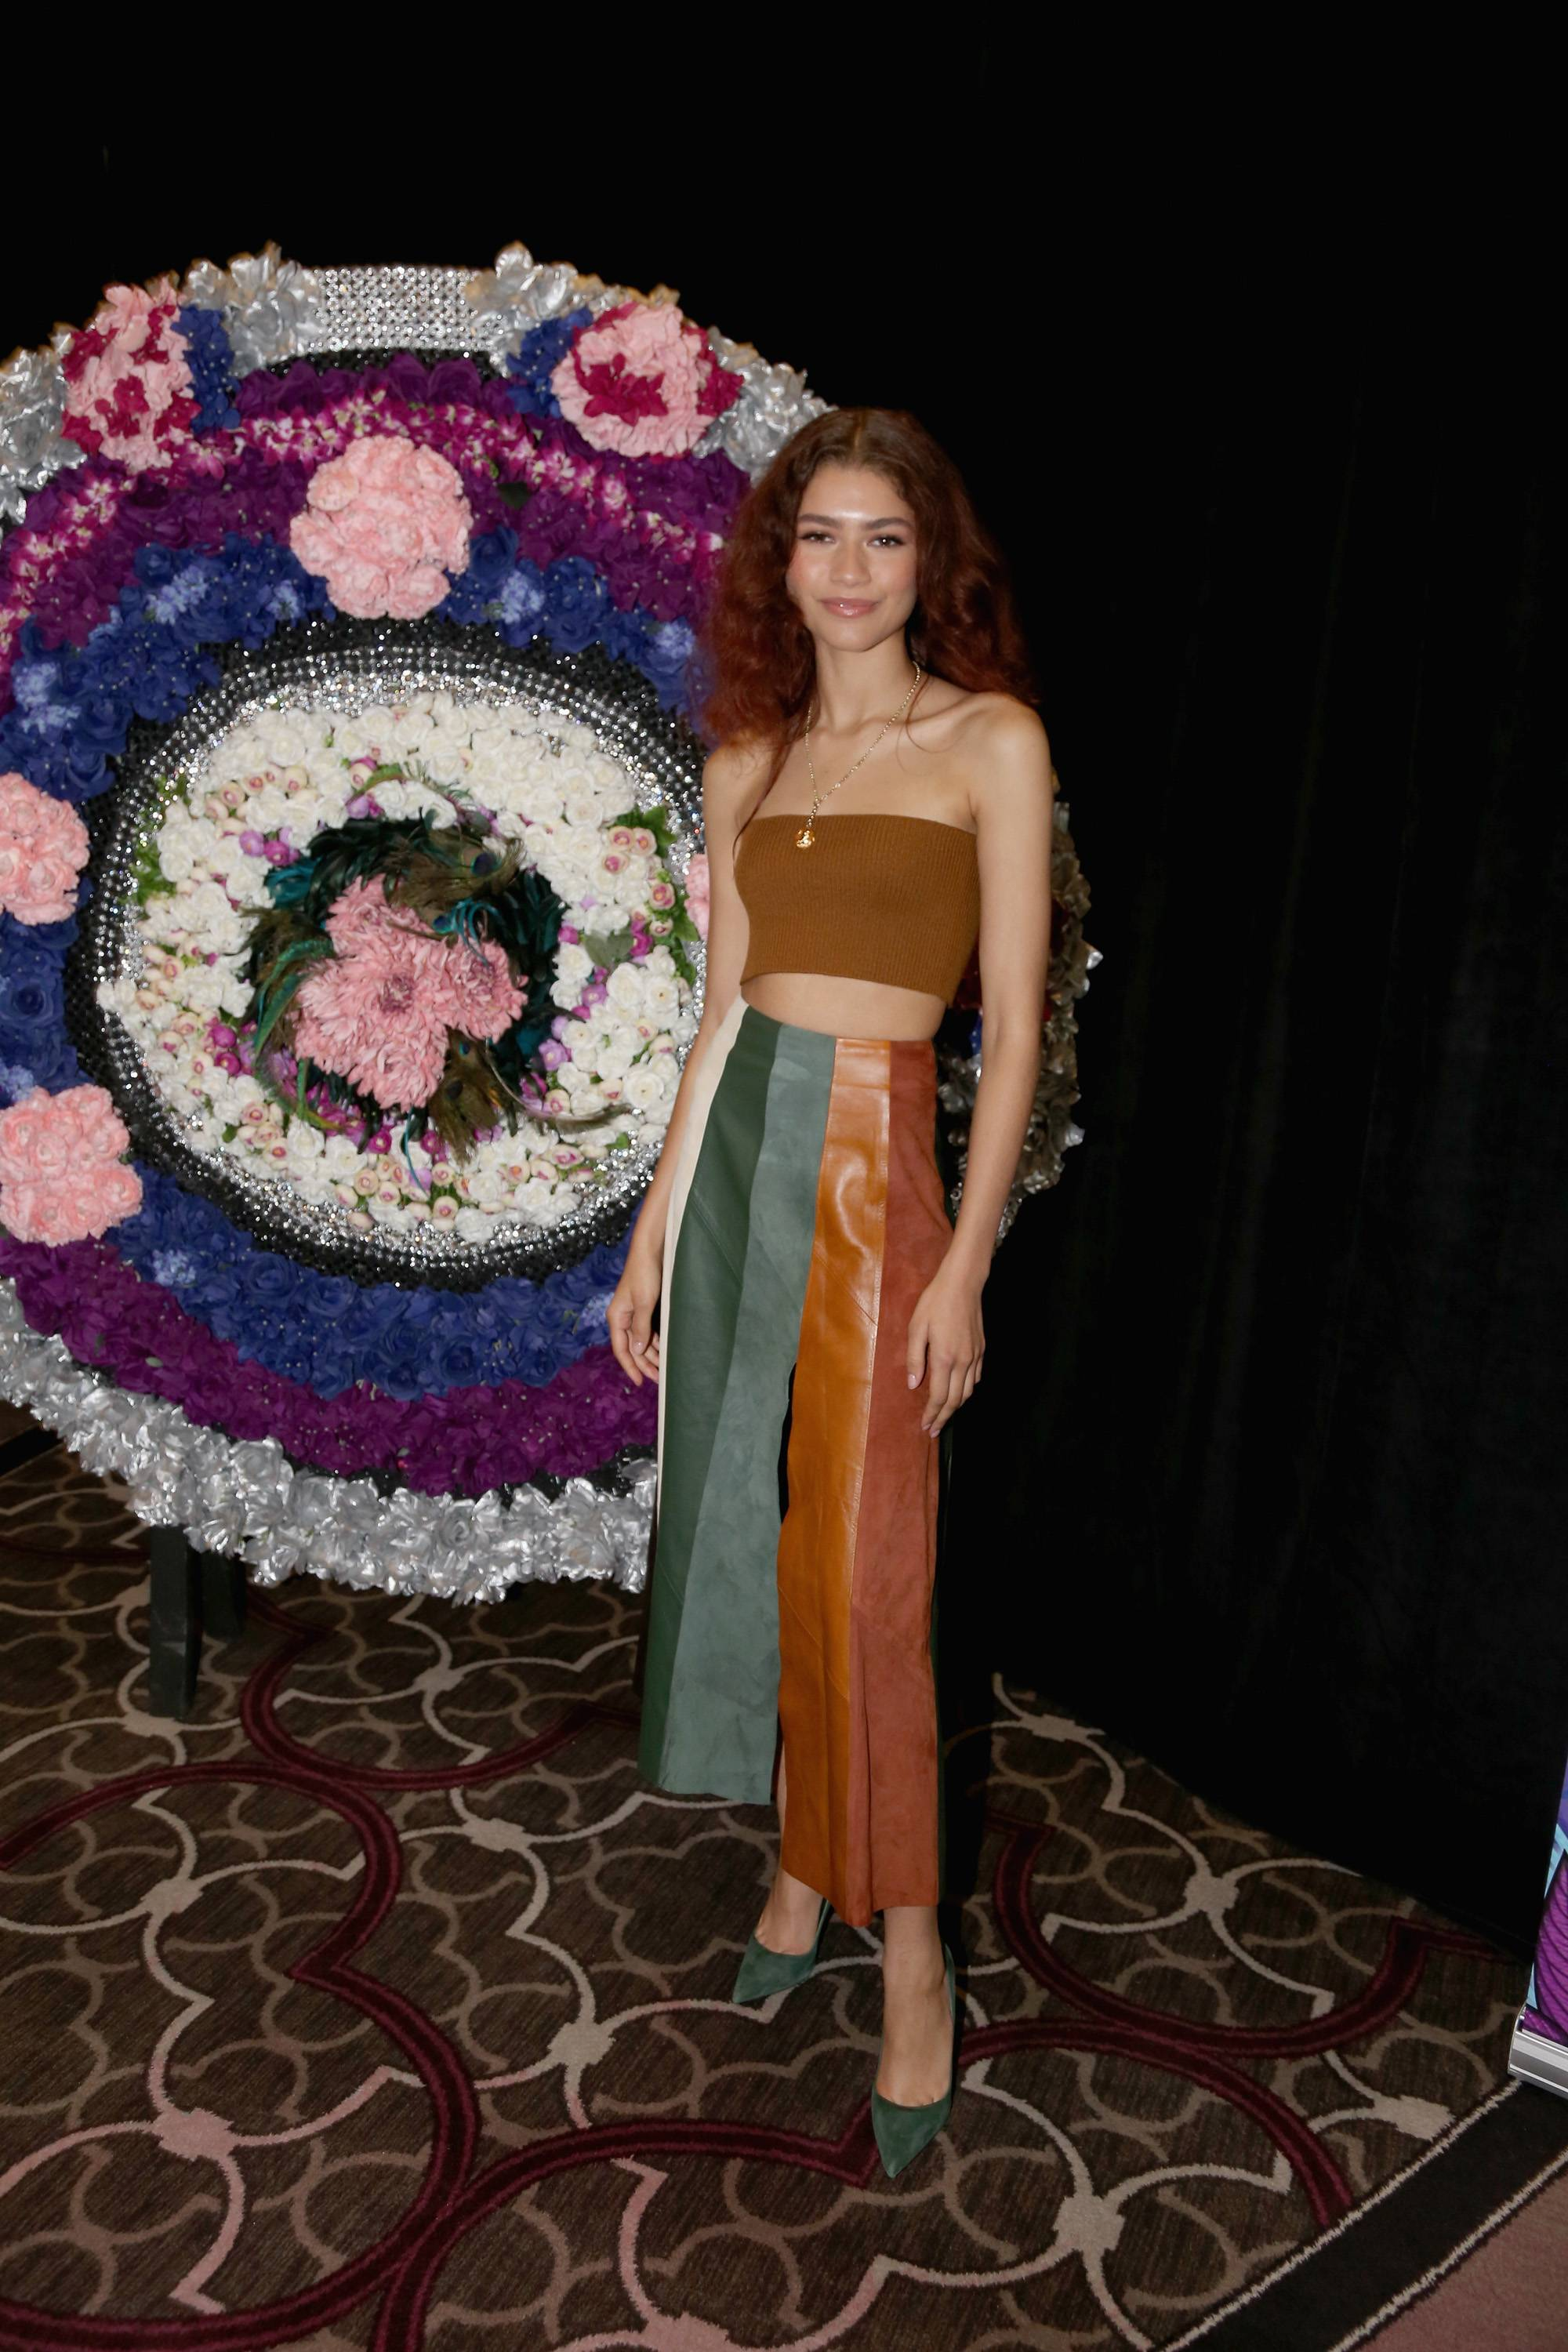 Forever Ferragamo - HBO's Euphoria star dazzled the crowd with her charm and trendsetting style at the AT&T Dream in Black invite-only brunch at the 25th Essence Festival. She wore a multi-colored patchwork Ferragamo Skirt and ribbed tube top along with suede forest green pumps by LaSilla styled by her longtime stylist Law Roach. (Photo: Gary Miller/WireImage)